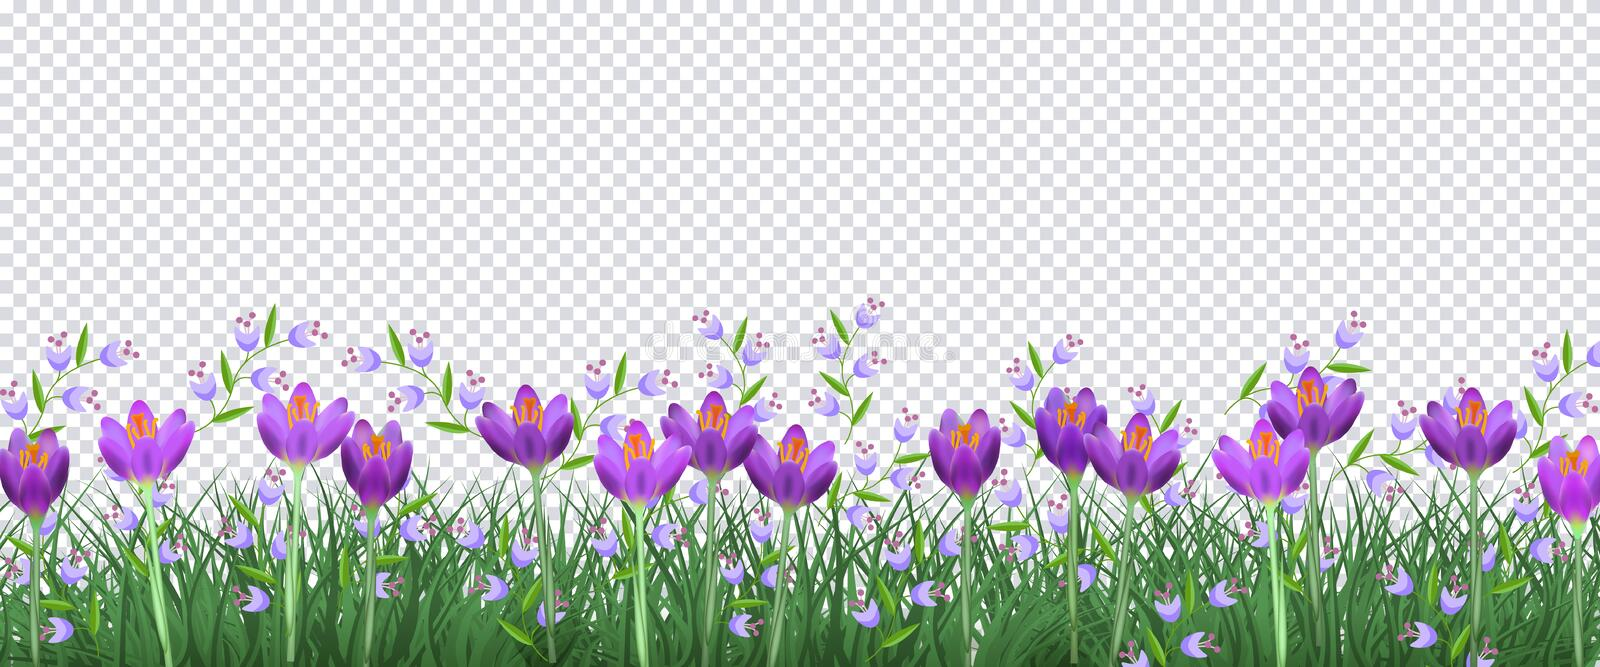 Spring floral border with bright purple crocuses and little blue wild flowers on green grass on transparent background. Spring floral border with bright purple royalty free illustration